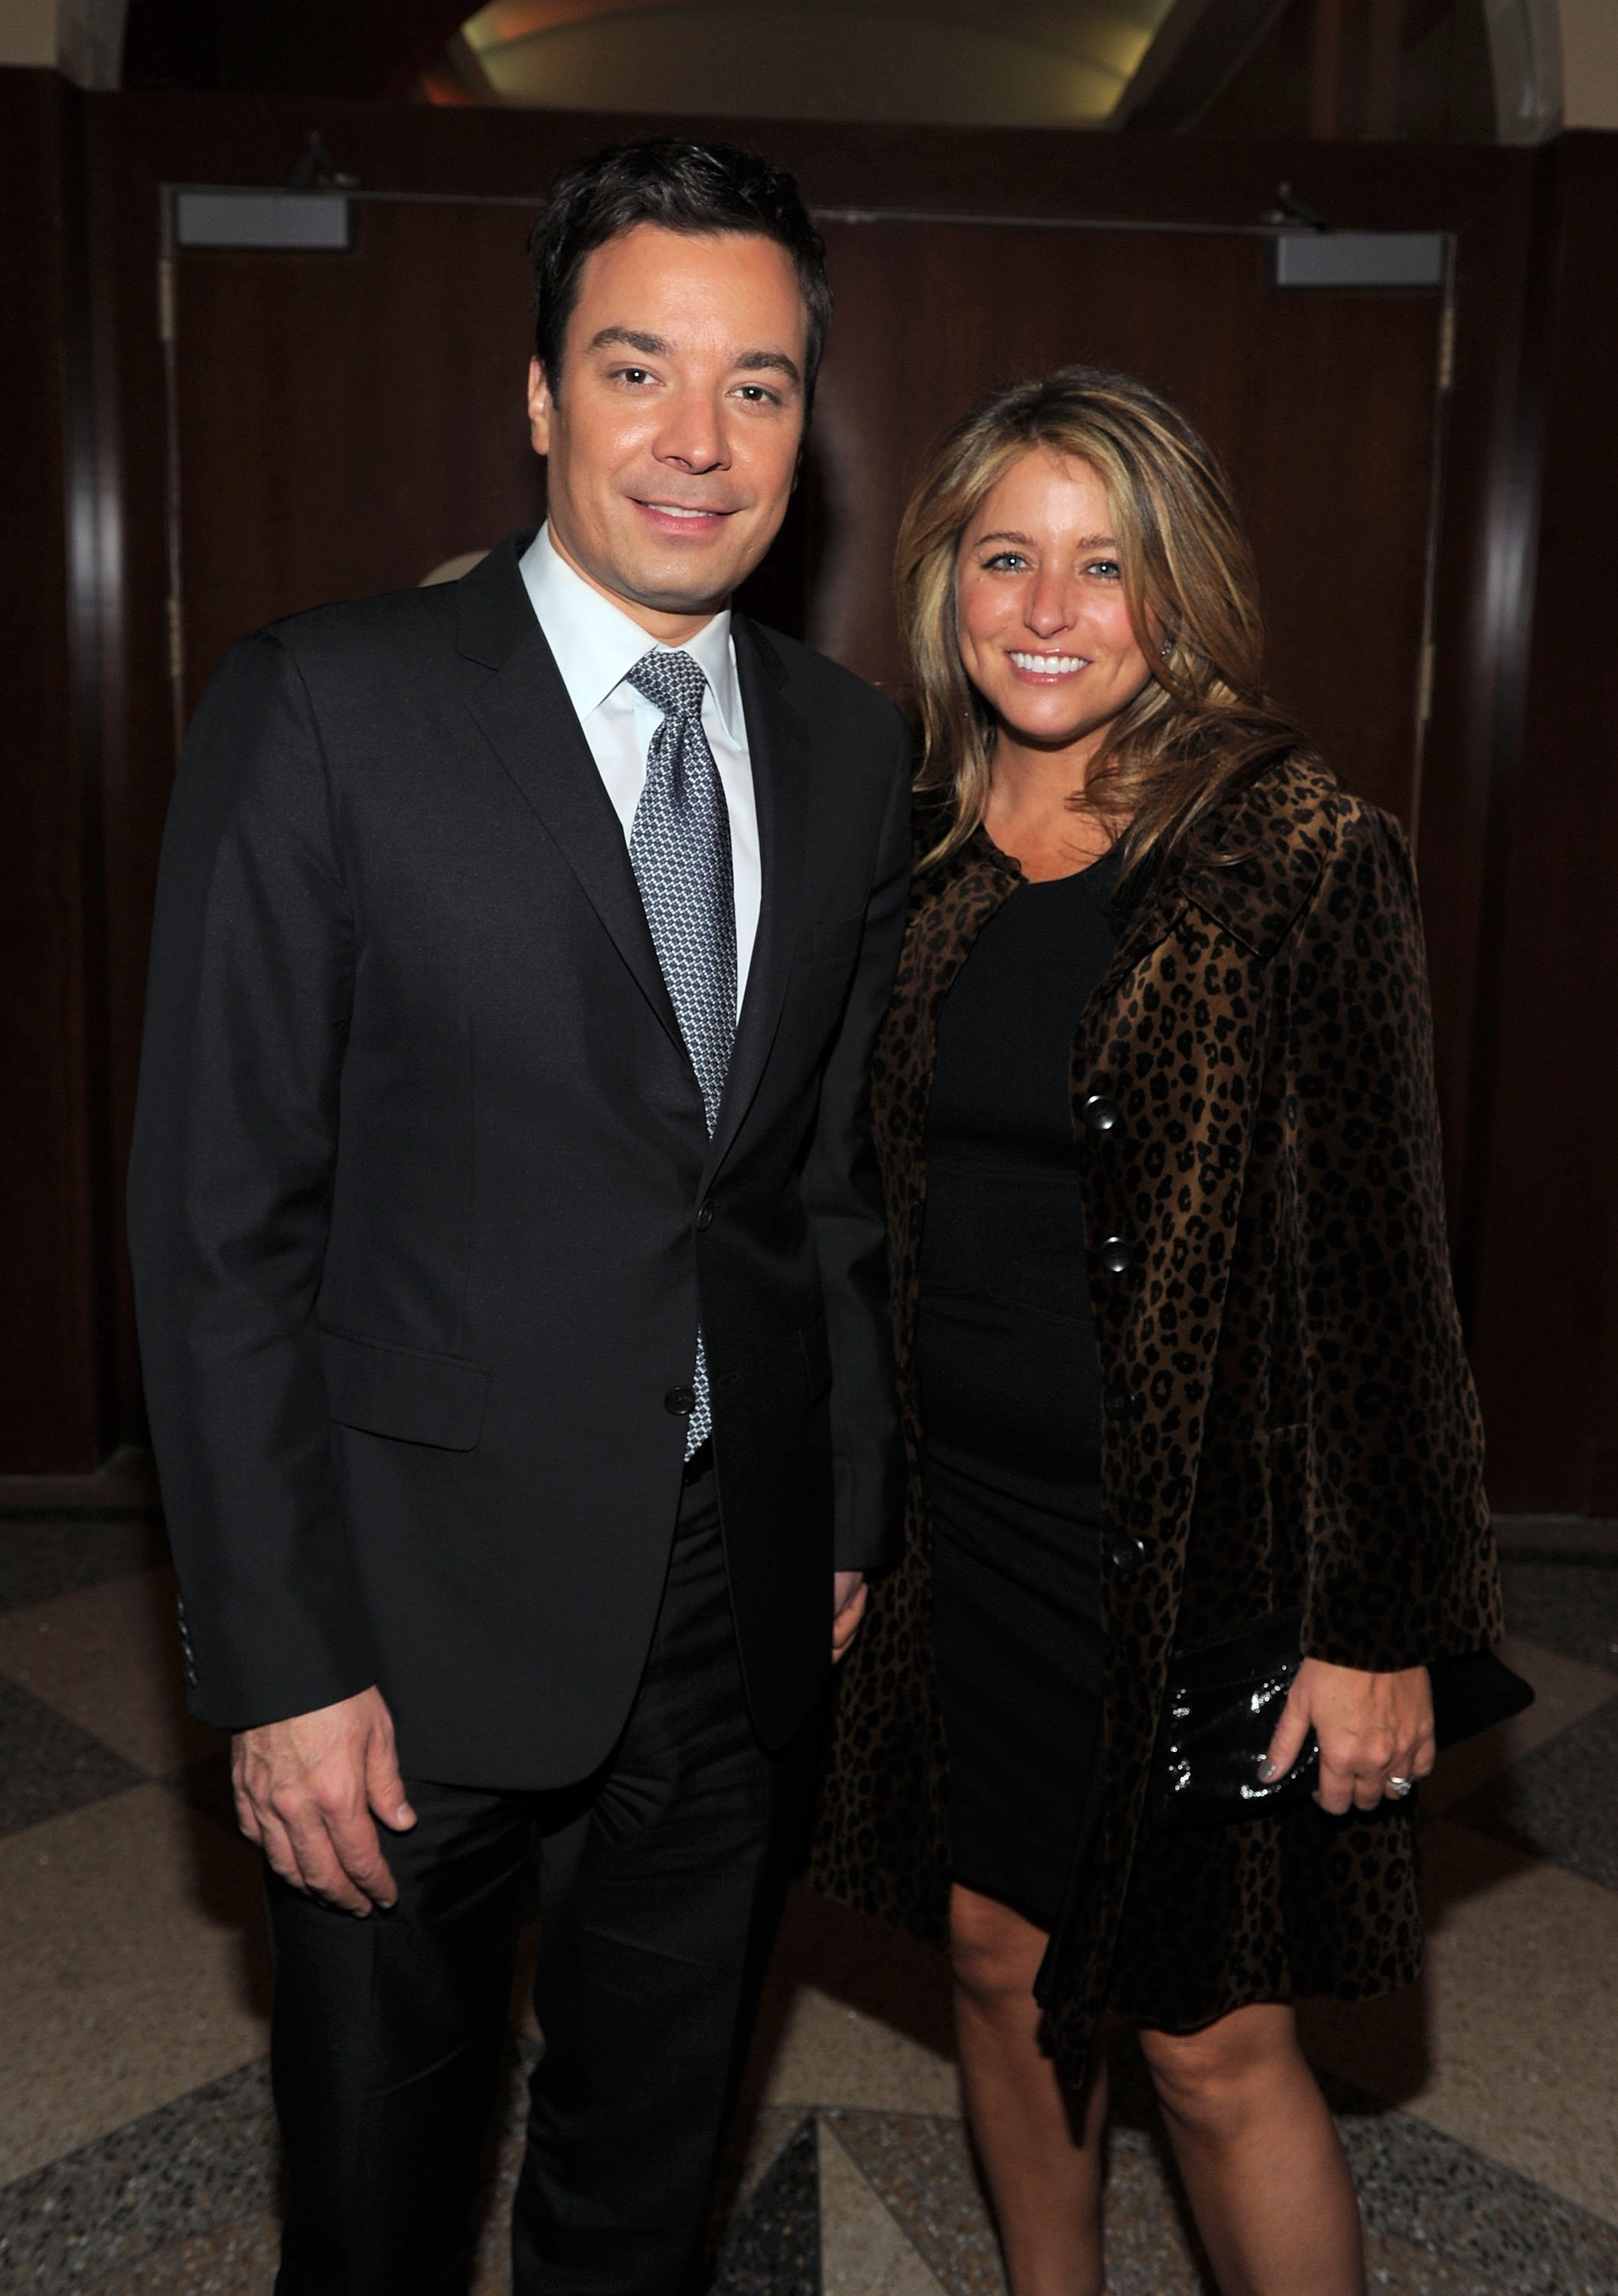 Jimmy Fallon and Nancy Juvonen attend Food Bank For New York City's Annual Can-Do Awards Gala on April 7, 2011, in New York City. | Source: Getty Images.